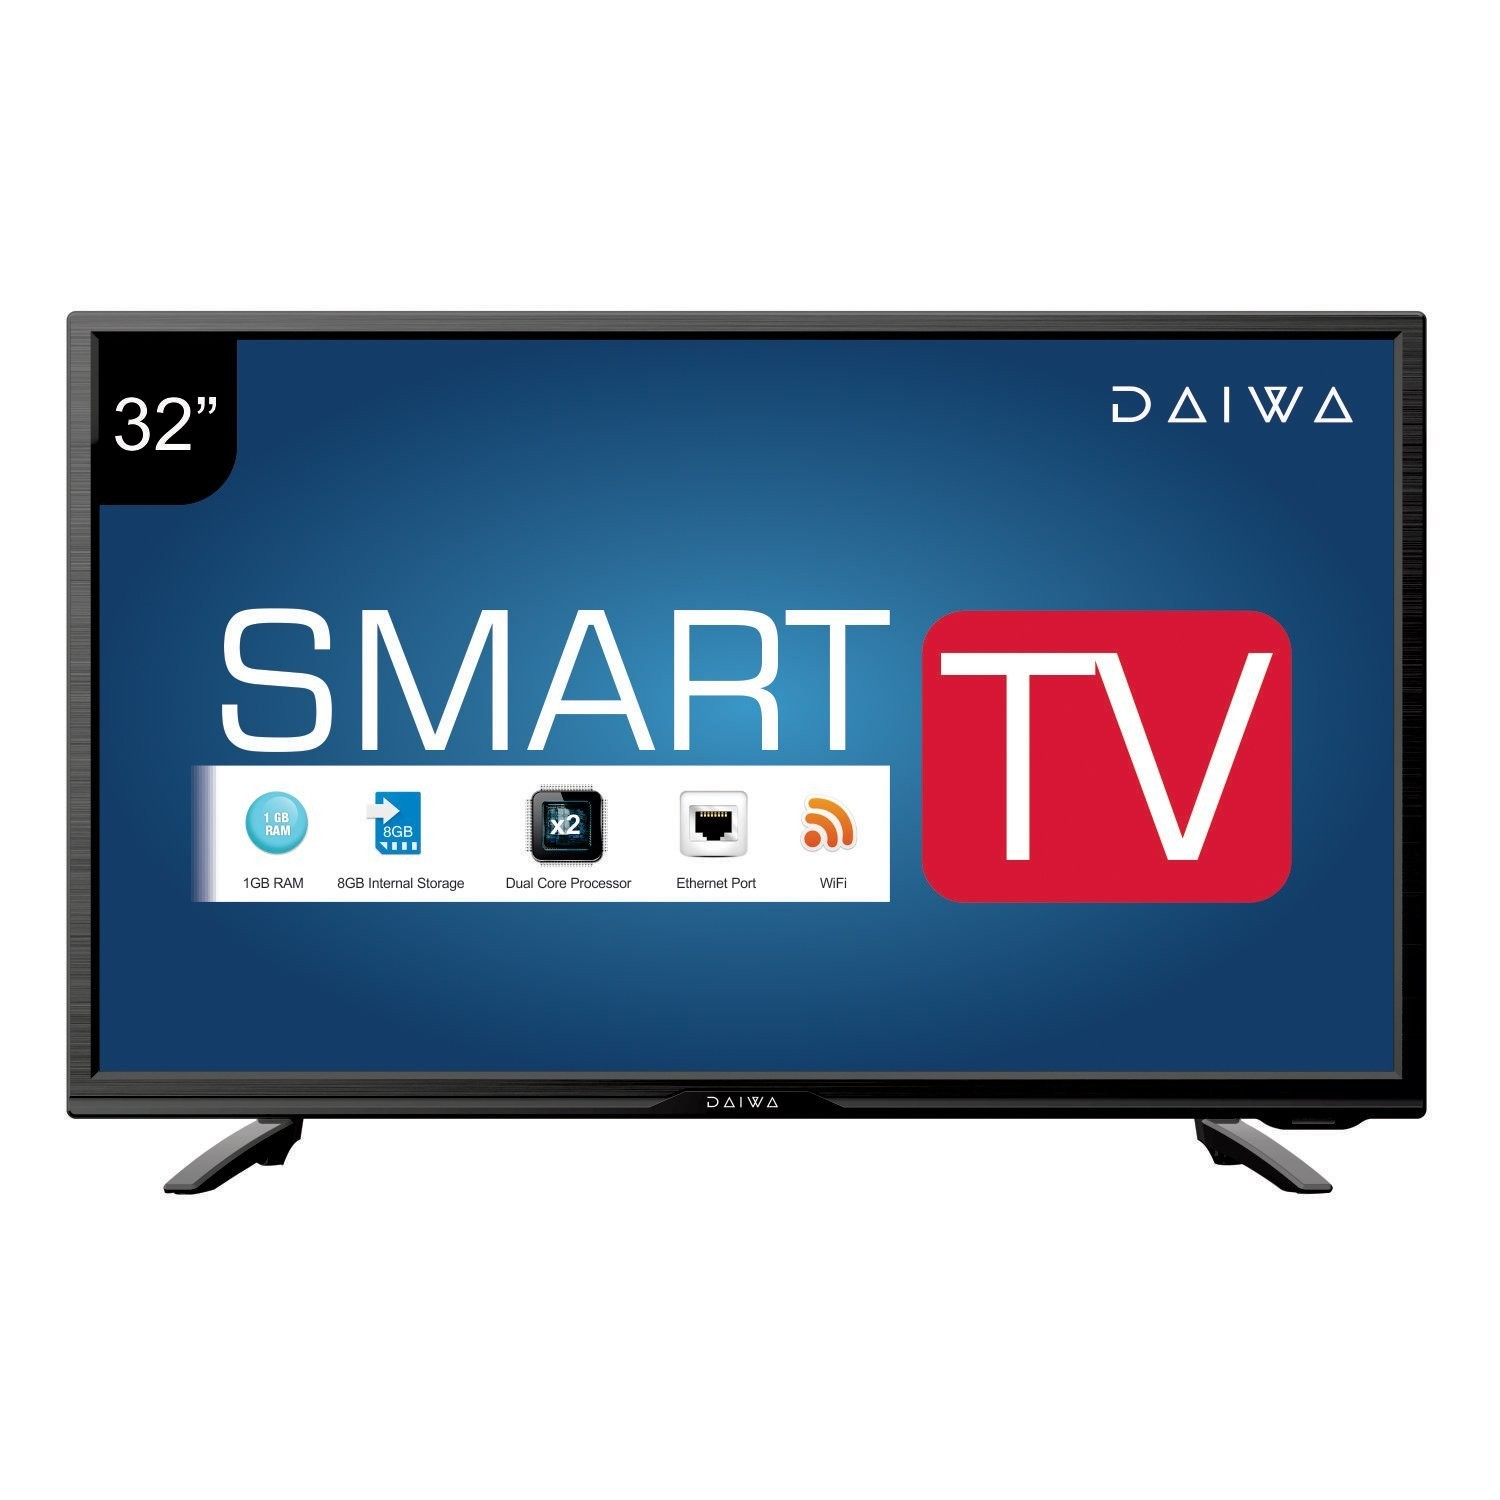 Daiwa Smart Android LED TV D32C4S is Now Available at INR 15490 in India